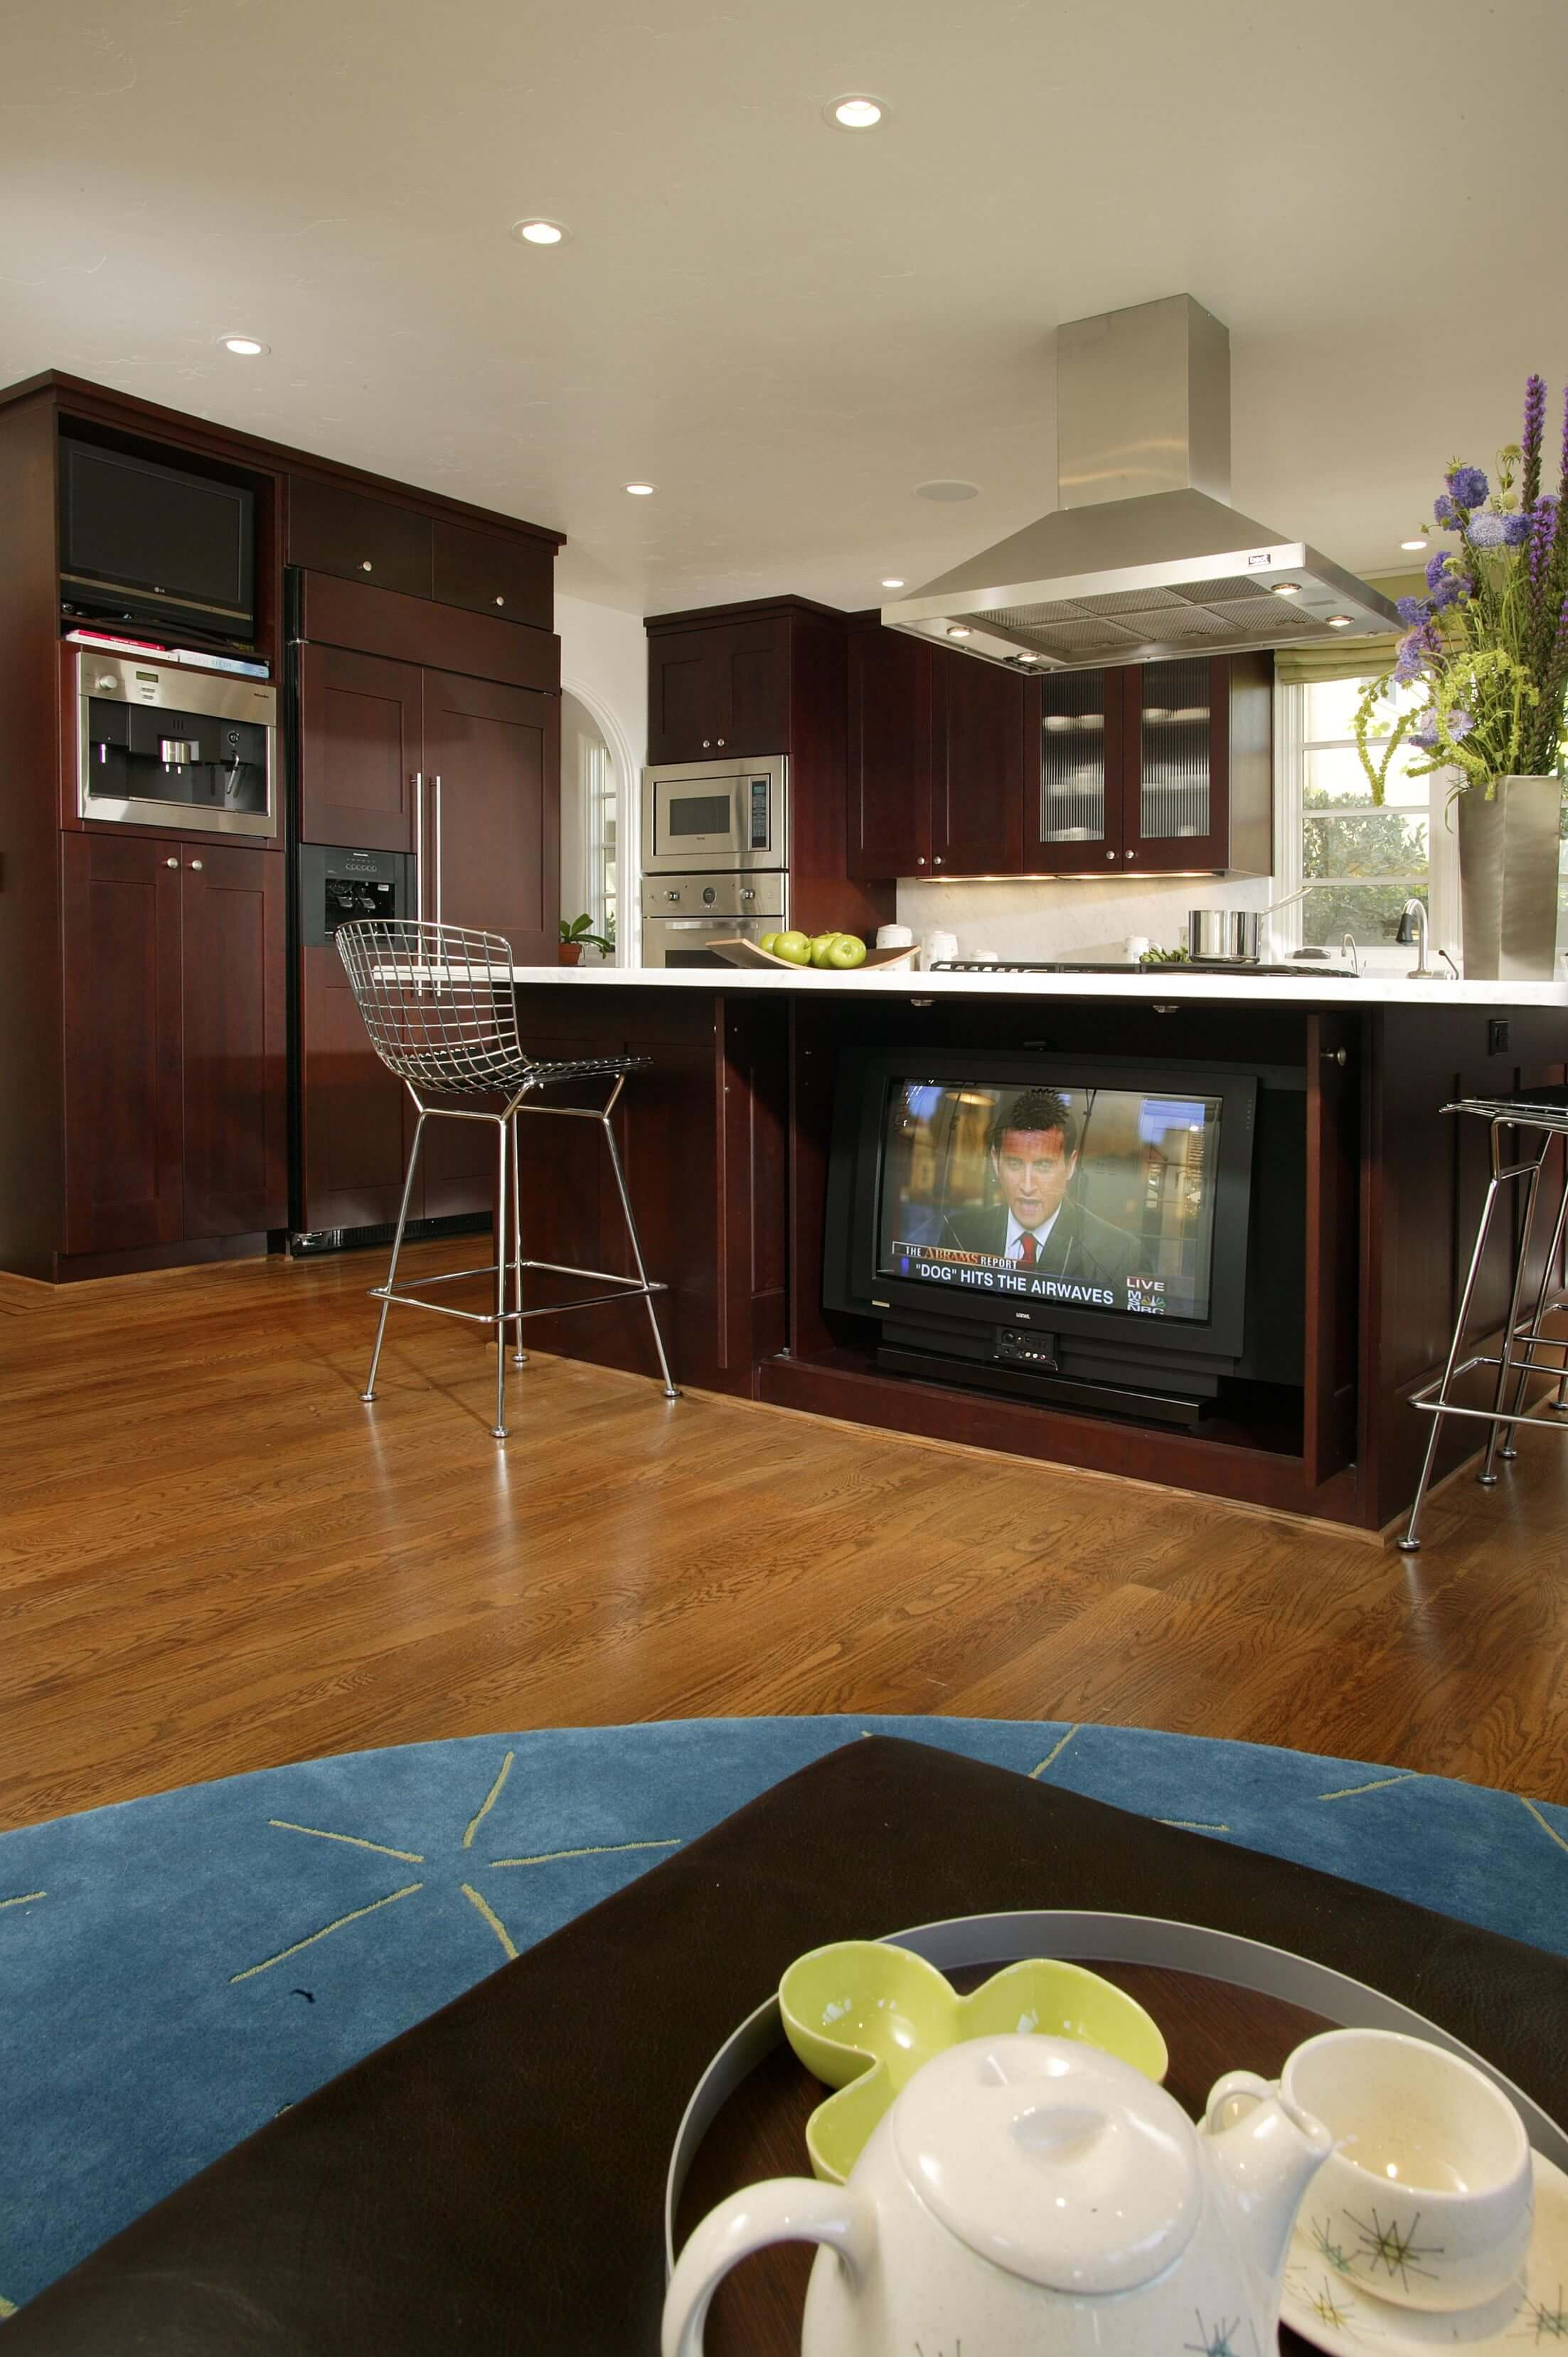 Large, open plan kitchen featuring natural hardwood flooring, with dark wood cabinetry throughout, punctuated by brushed aluminum appliances.